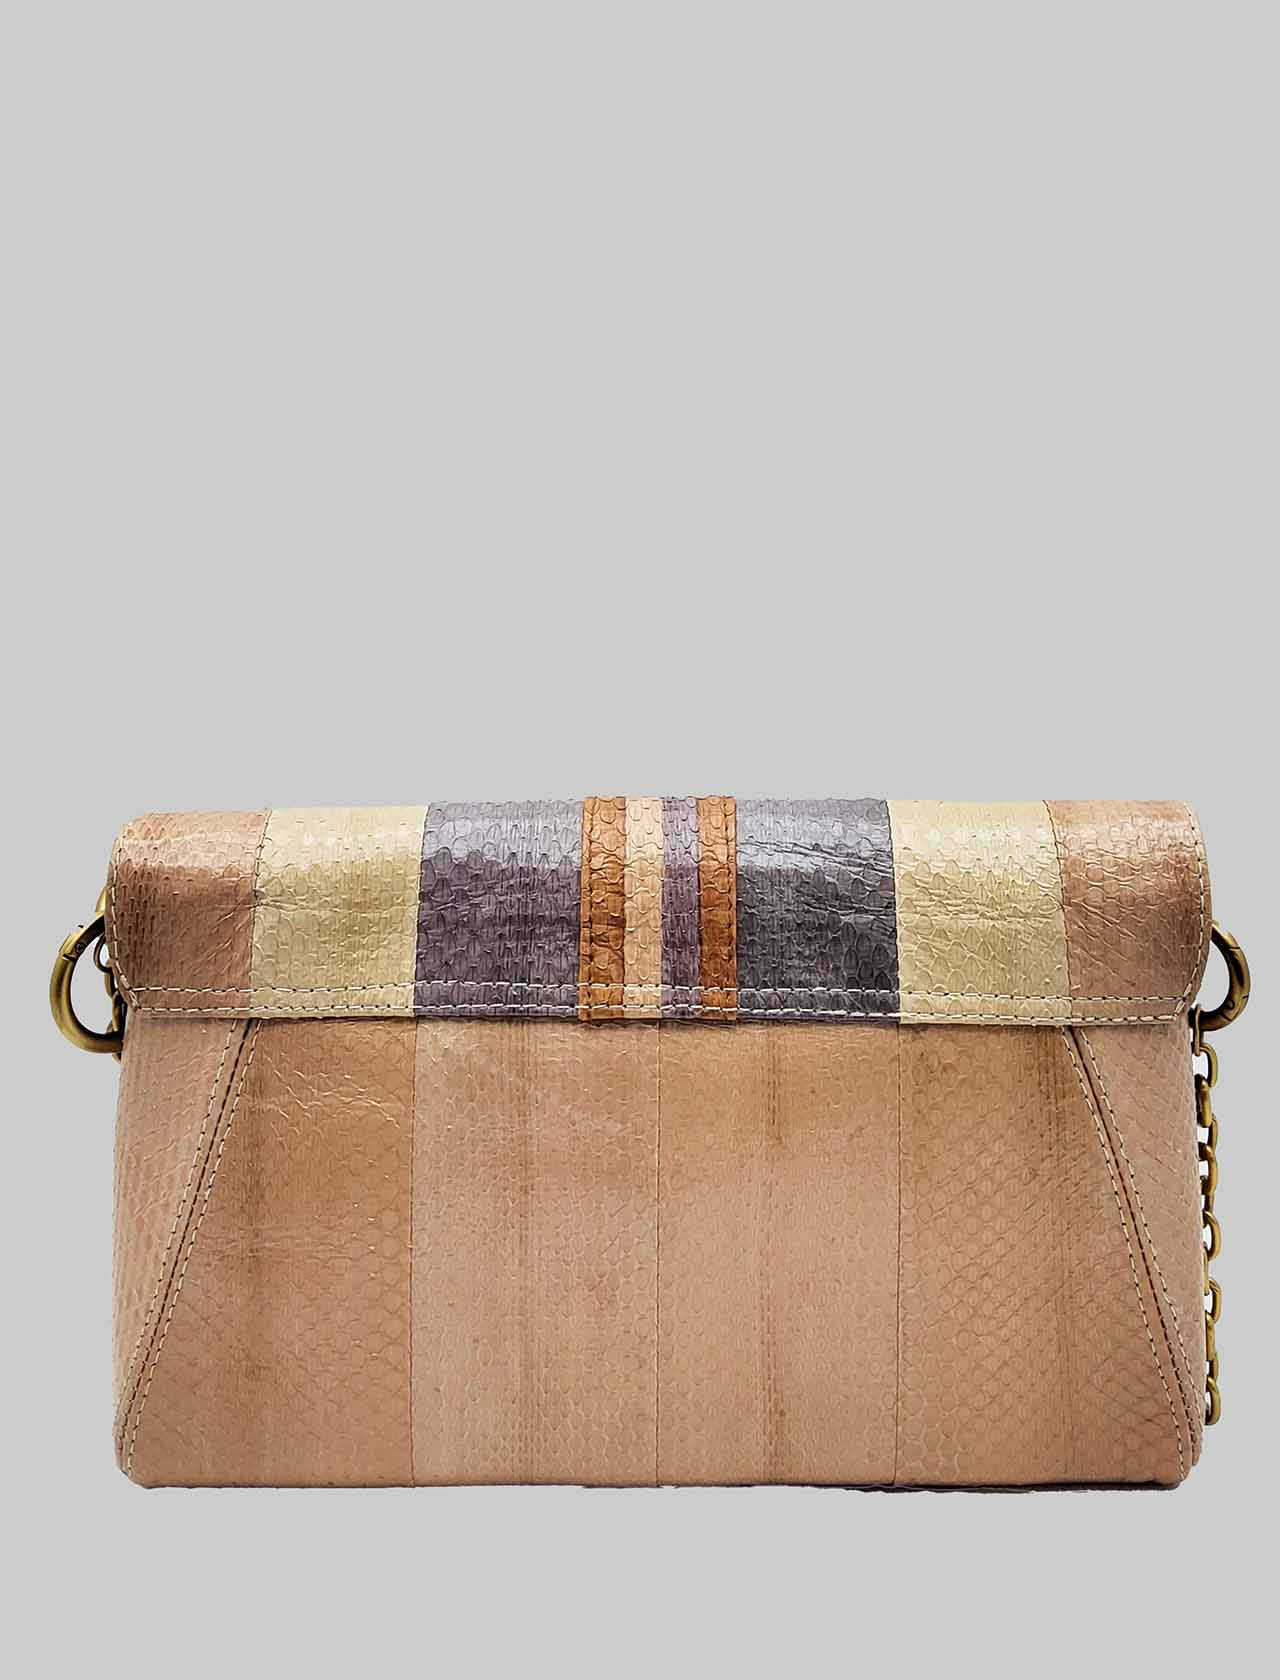 Woman Shoulder Bag Medium Exotic Stripes in Multicolored Pink Wips with Gold Chain and Removable and Adjustable Leather Shoulder Strap Maliparmi | Bags and backpacks | BE00120142432B99